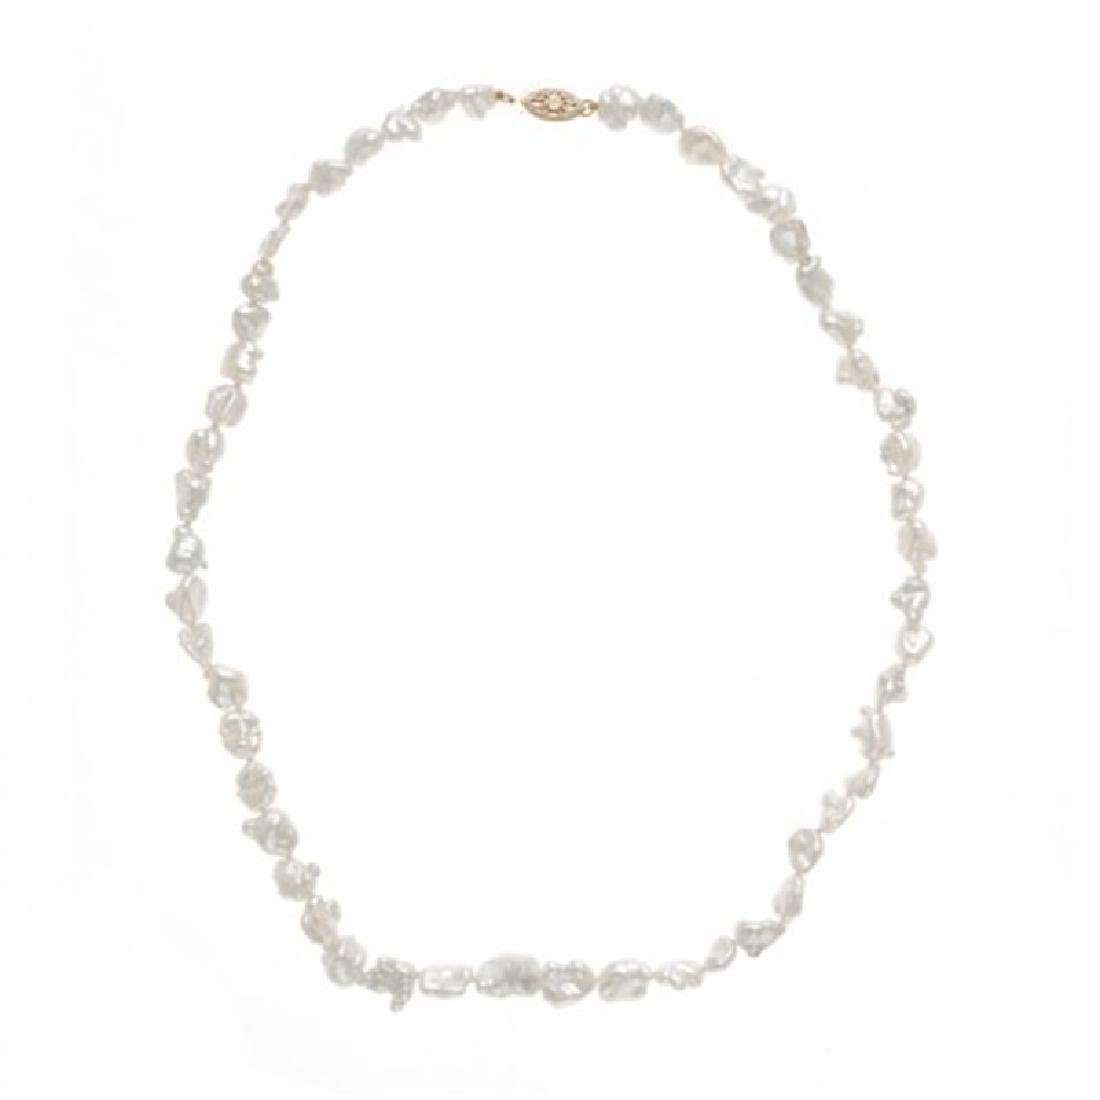 6.0-8.0mm South Sea Keshi Pearl Necklace